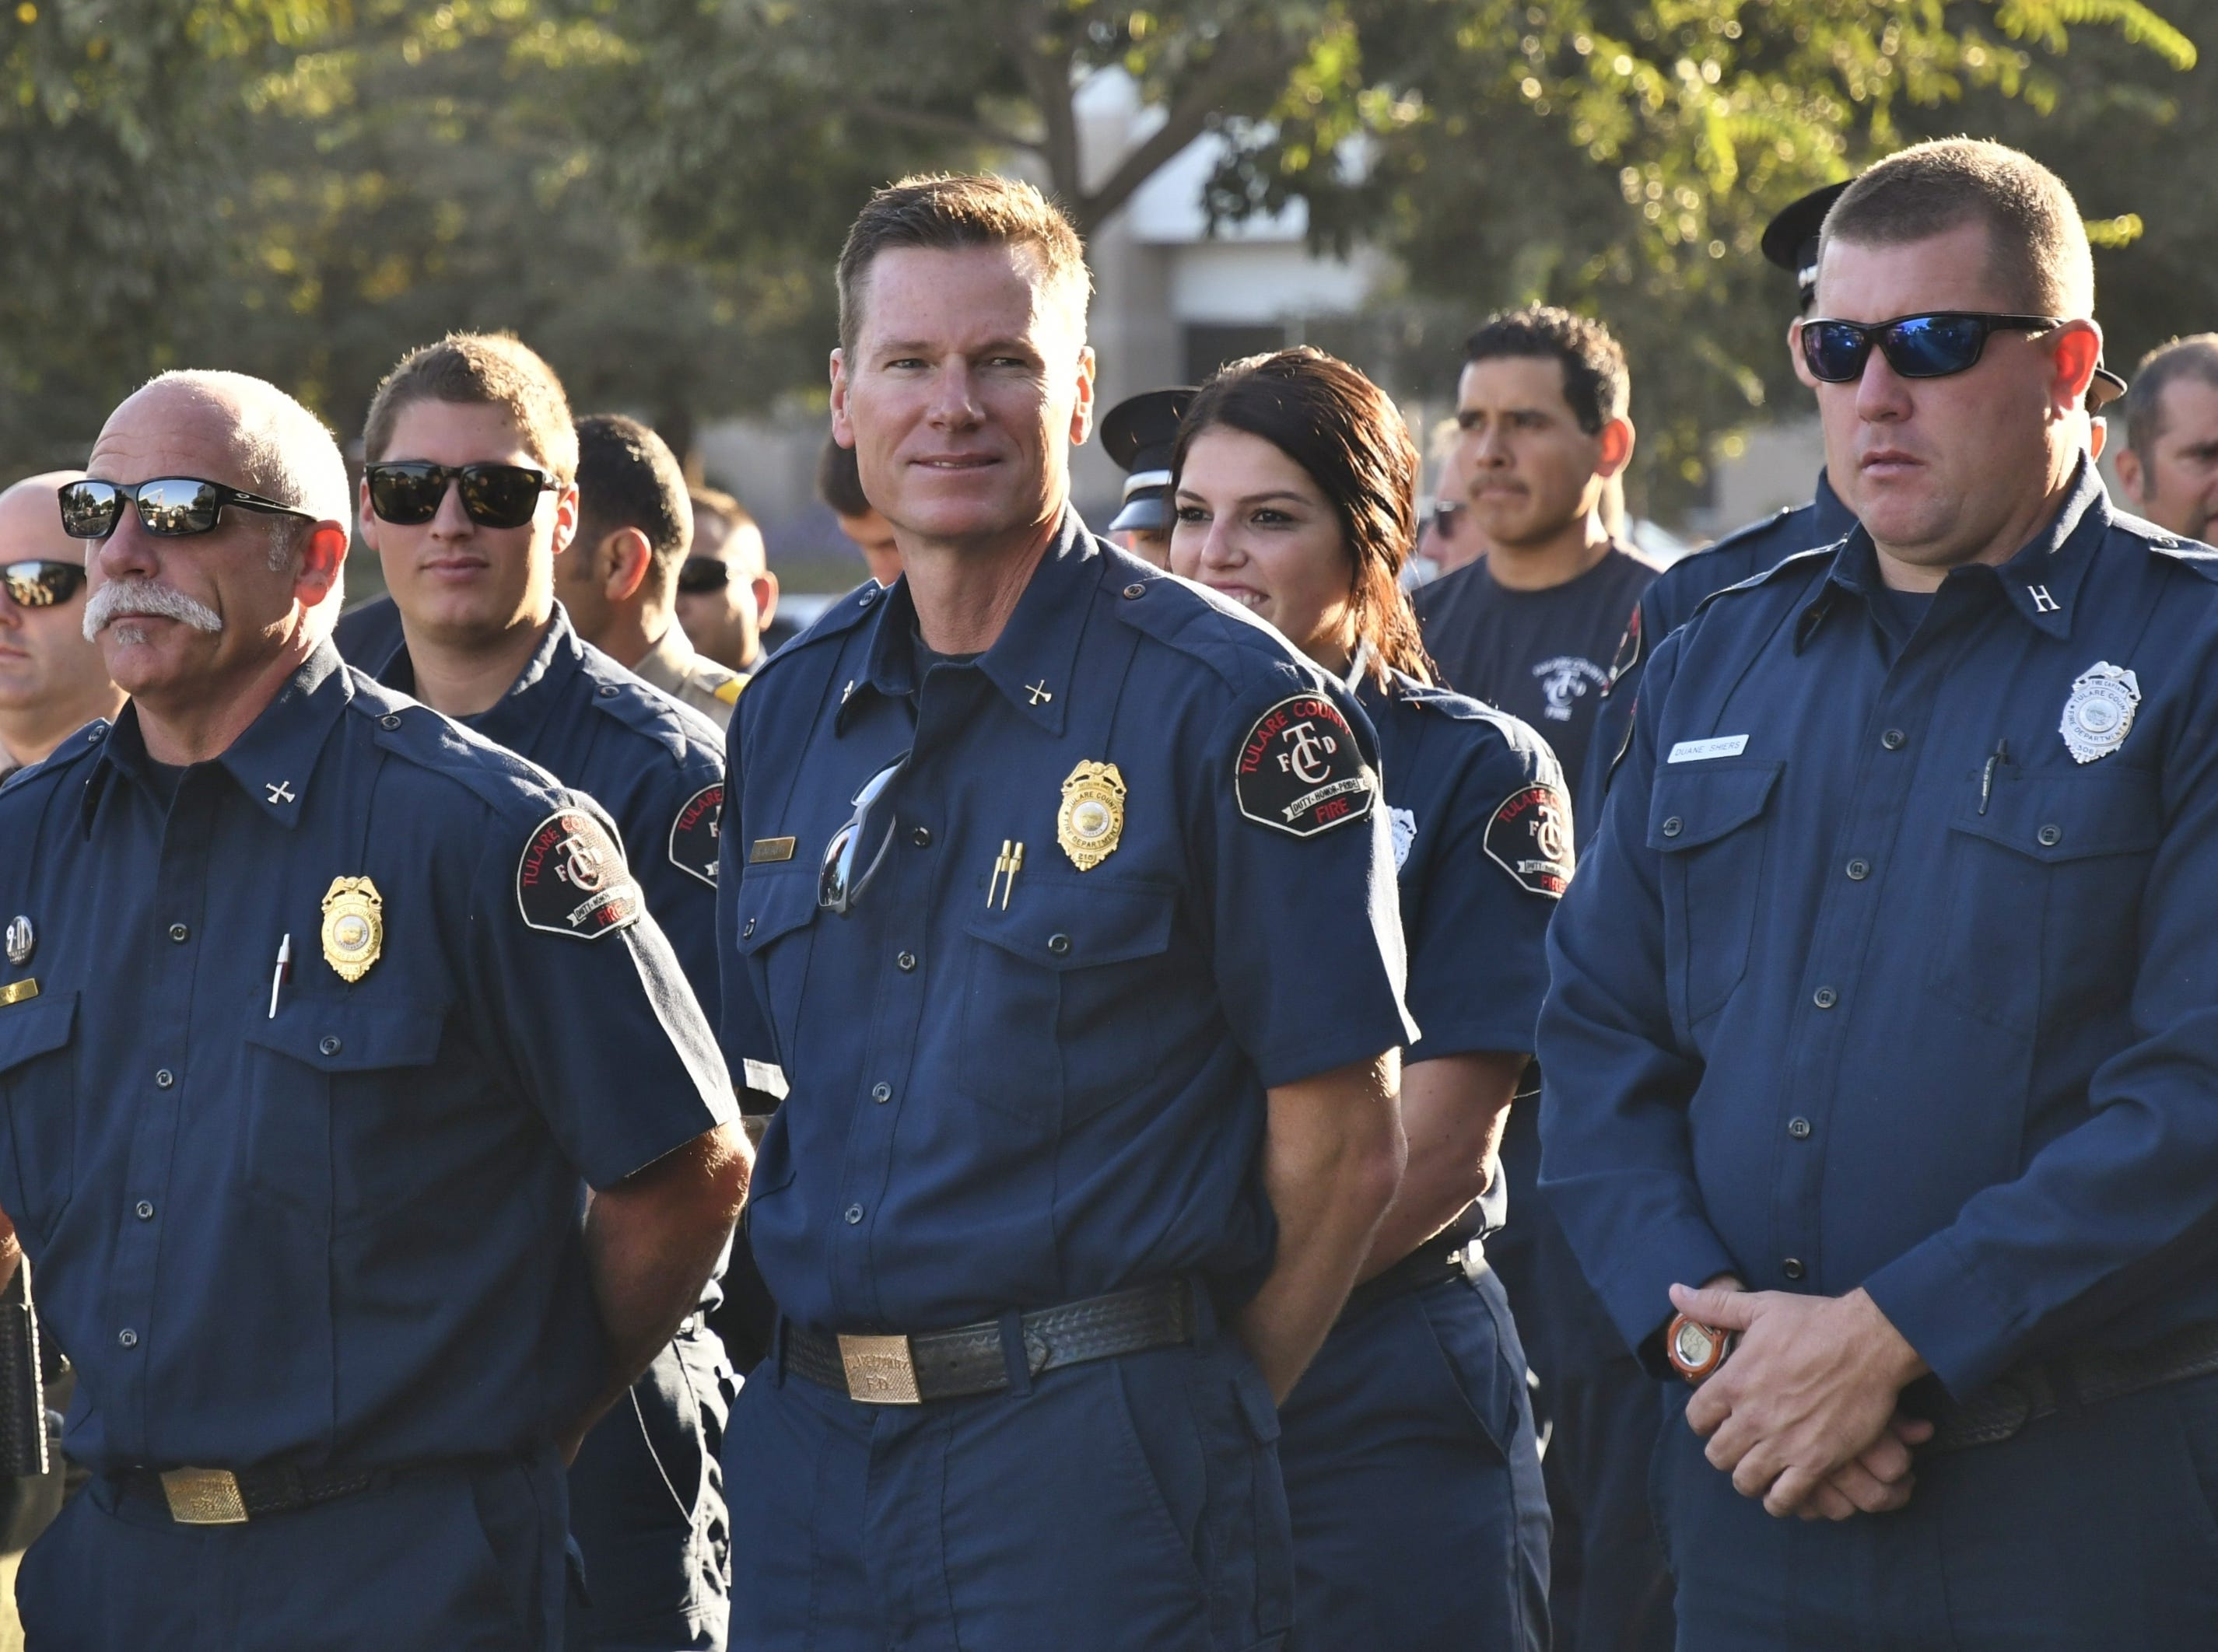 The Tulare County Sheriff's Department and the Tulare County Fire Department held a 9/11 remembrance ceremony on Tuesday. The ceremony was held in remembrance of the terrorist attacks at the World Trade Center, the Pentagon and the crash site at Shanksville, Penn. Sheriff Boudreaux and Fire Chief